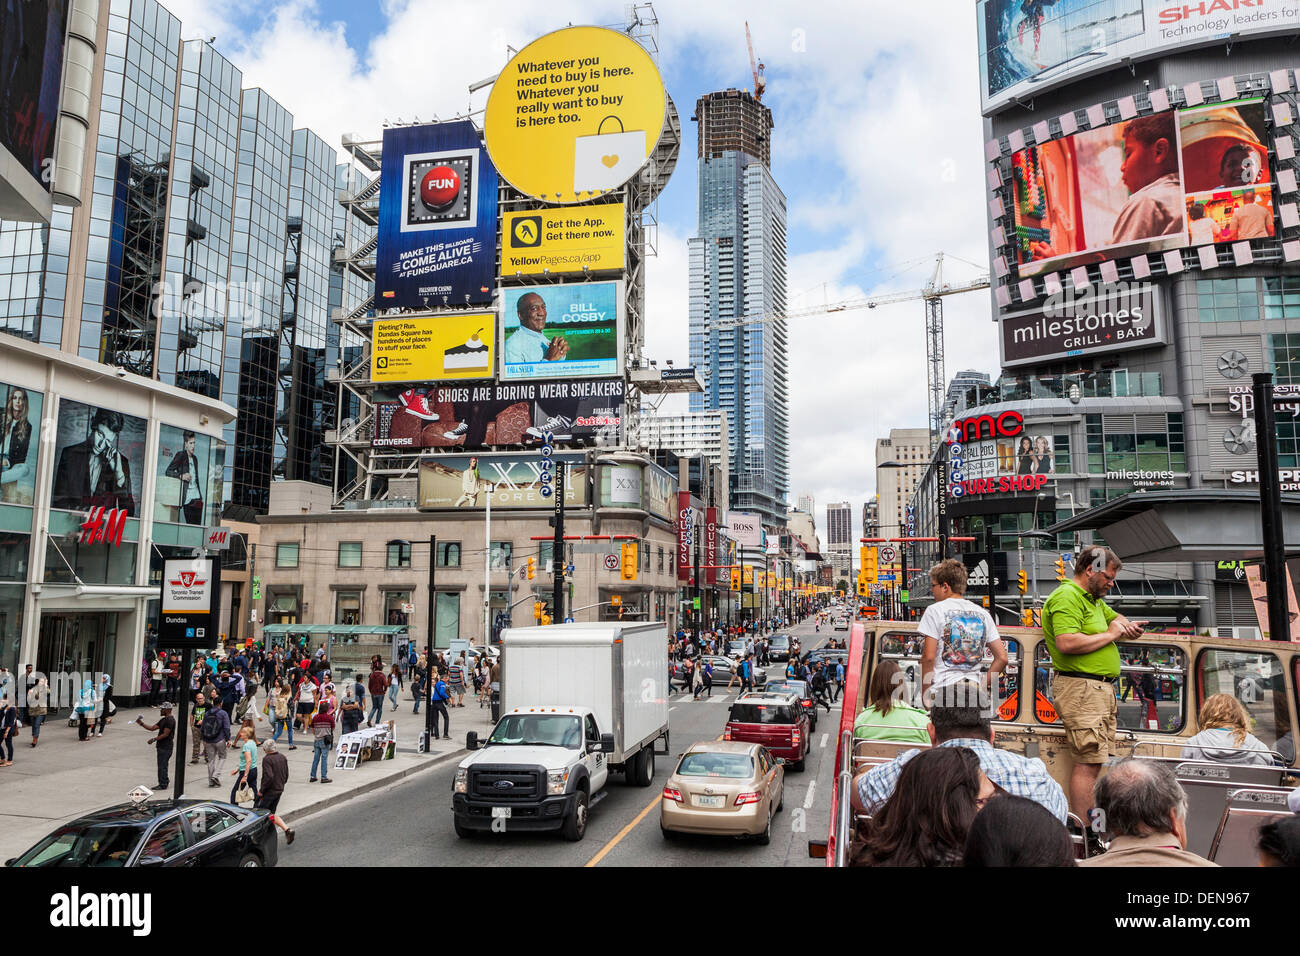 Colourful advertisements and billboards around Dundas Square (also known as YD Square and 'Toronto's Times Square') Toronto - Stock Image